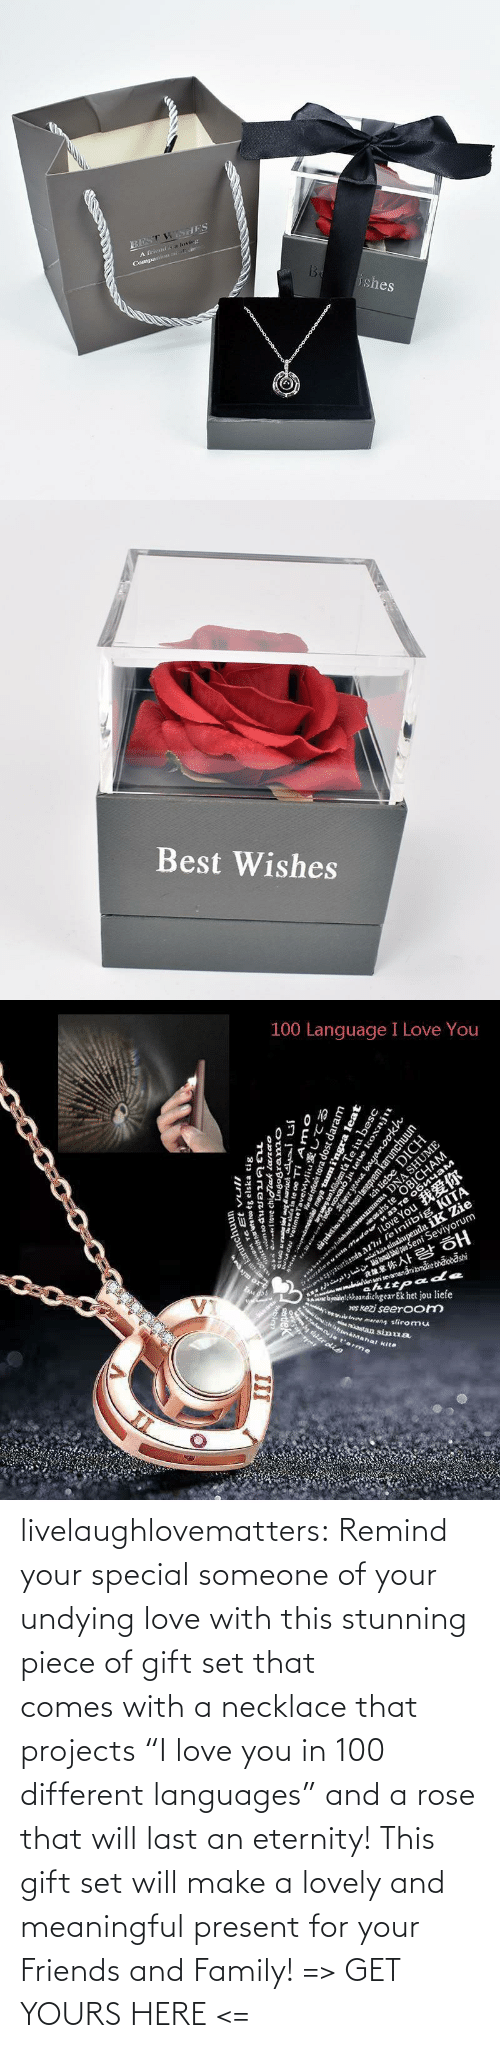 "yours: livelaughlovematters:  Remind your special someone of your undying love with this stunning piece of gift set that comes with a necklace that projects ""I love you in 100 different languages"" and a rose that will last an eternity! This gift set will make a lovely and meaningful present for your Friends and Family! => GET YOURS HERE <="